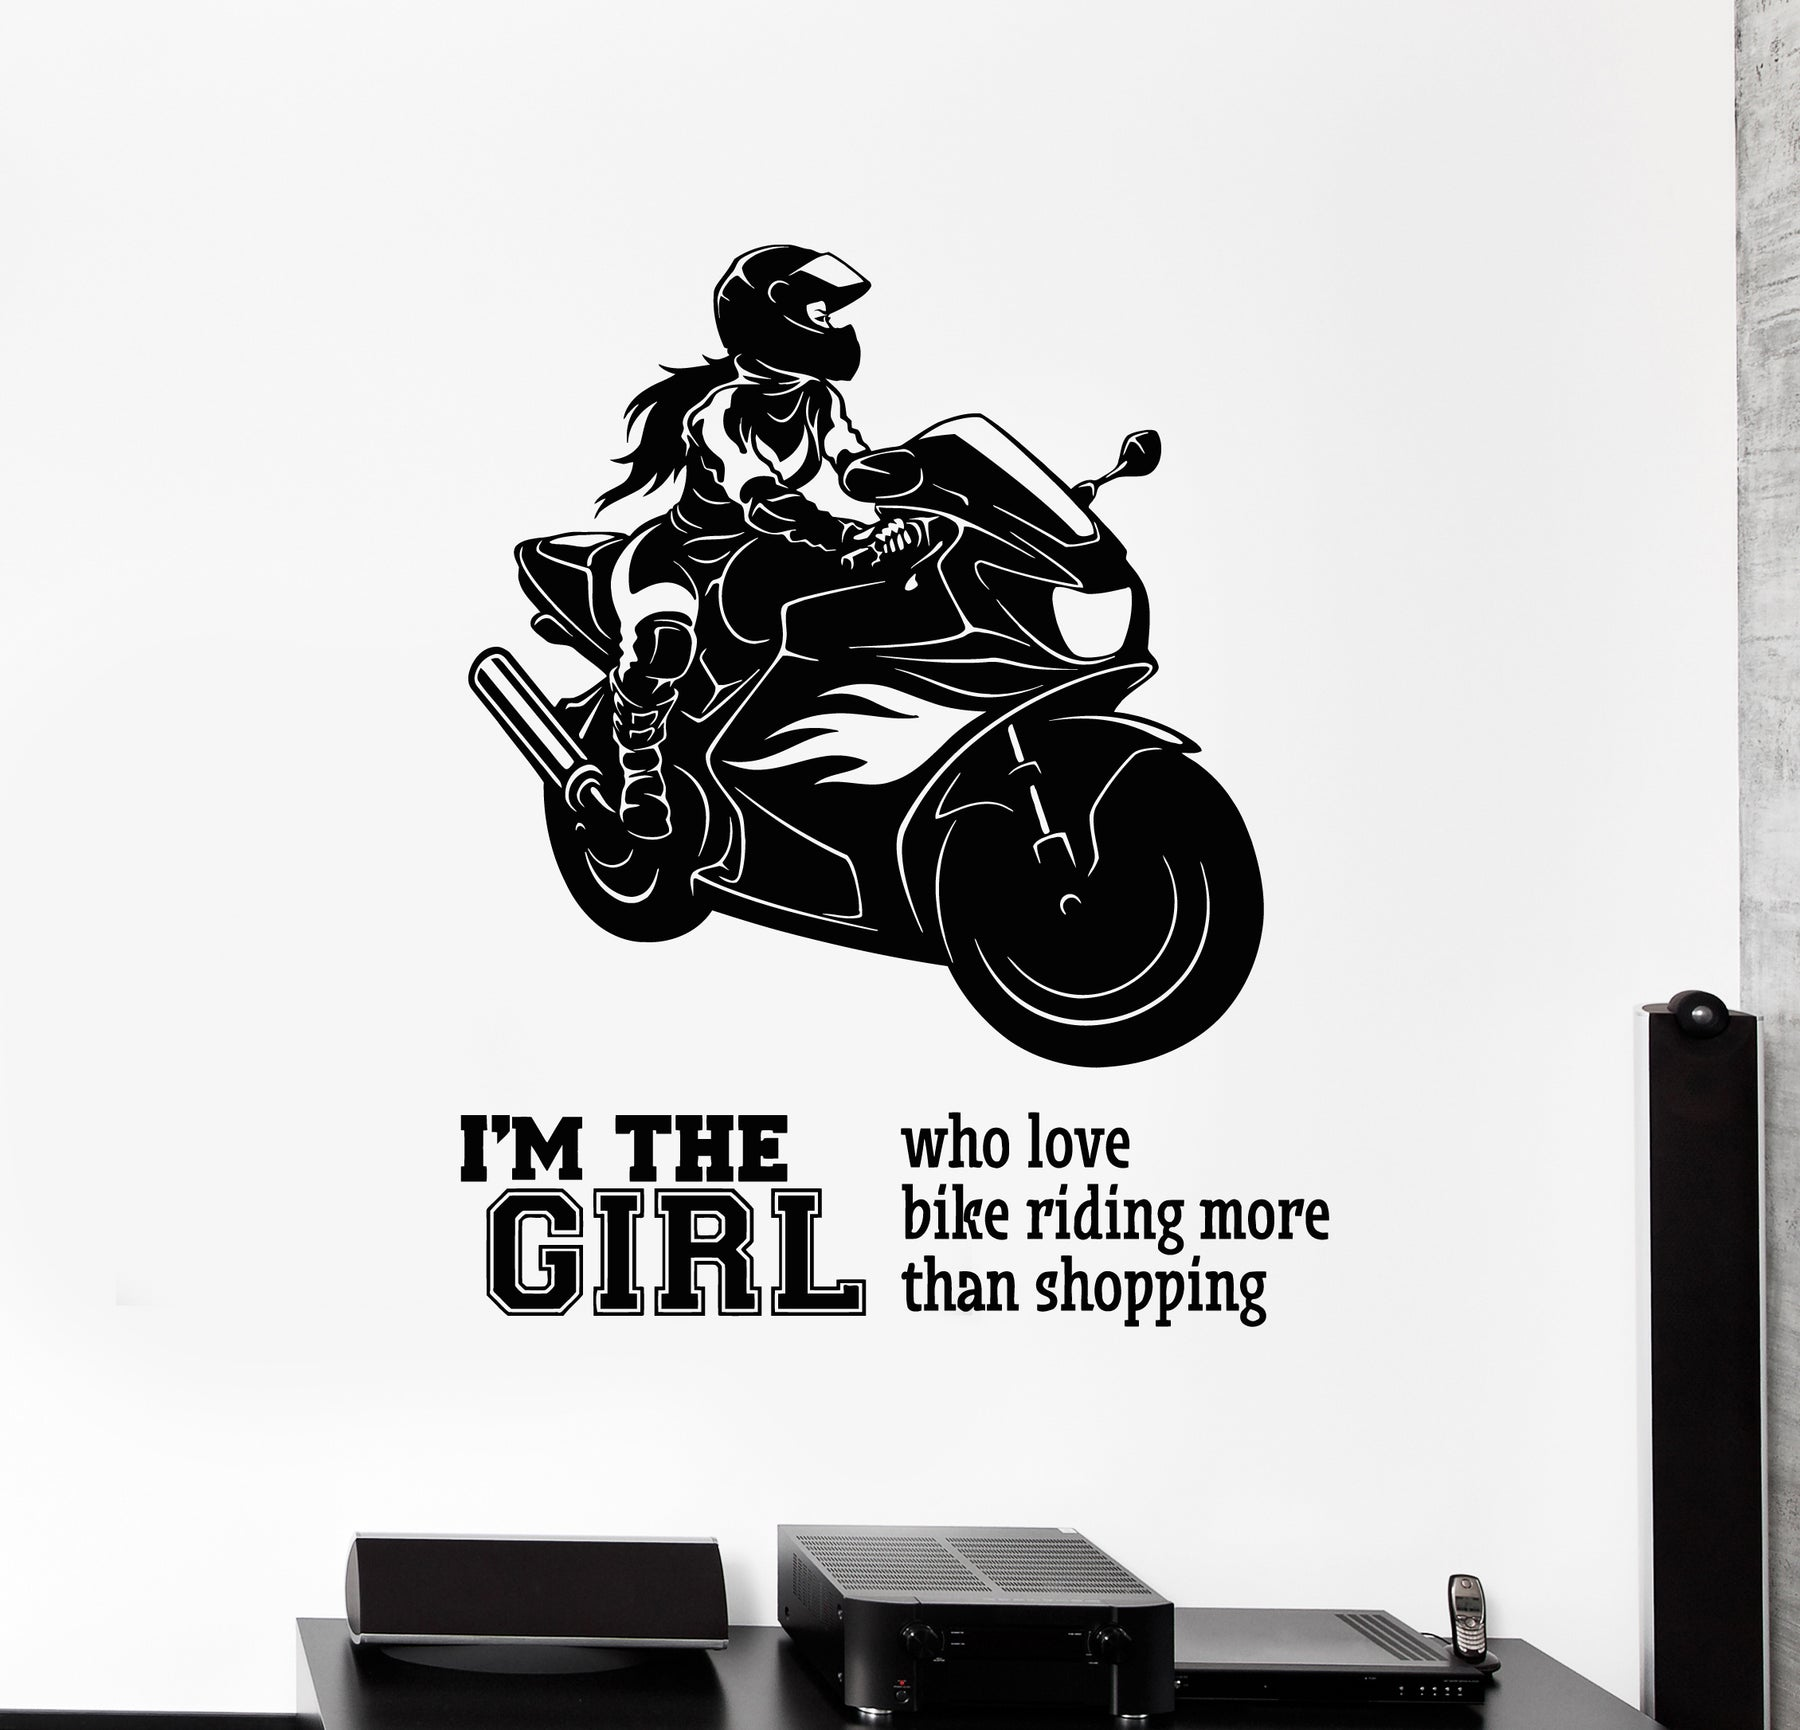 Vinyl Wall Decal Bike Speed Biker Woman Motorcycle Racing Sports Quote Stickers Mural (g860)